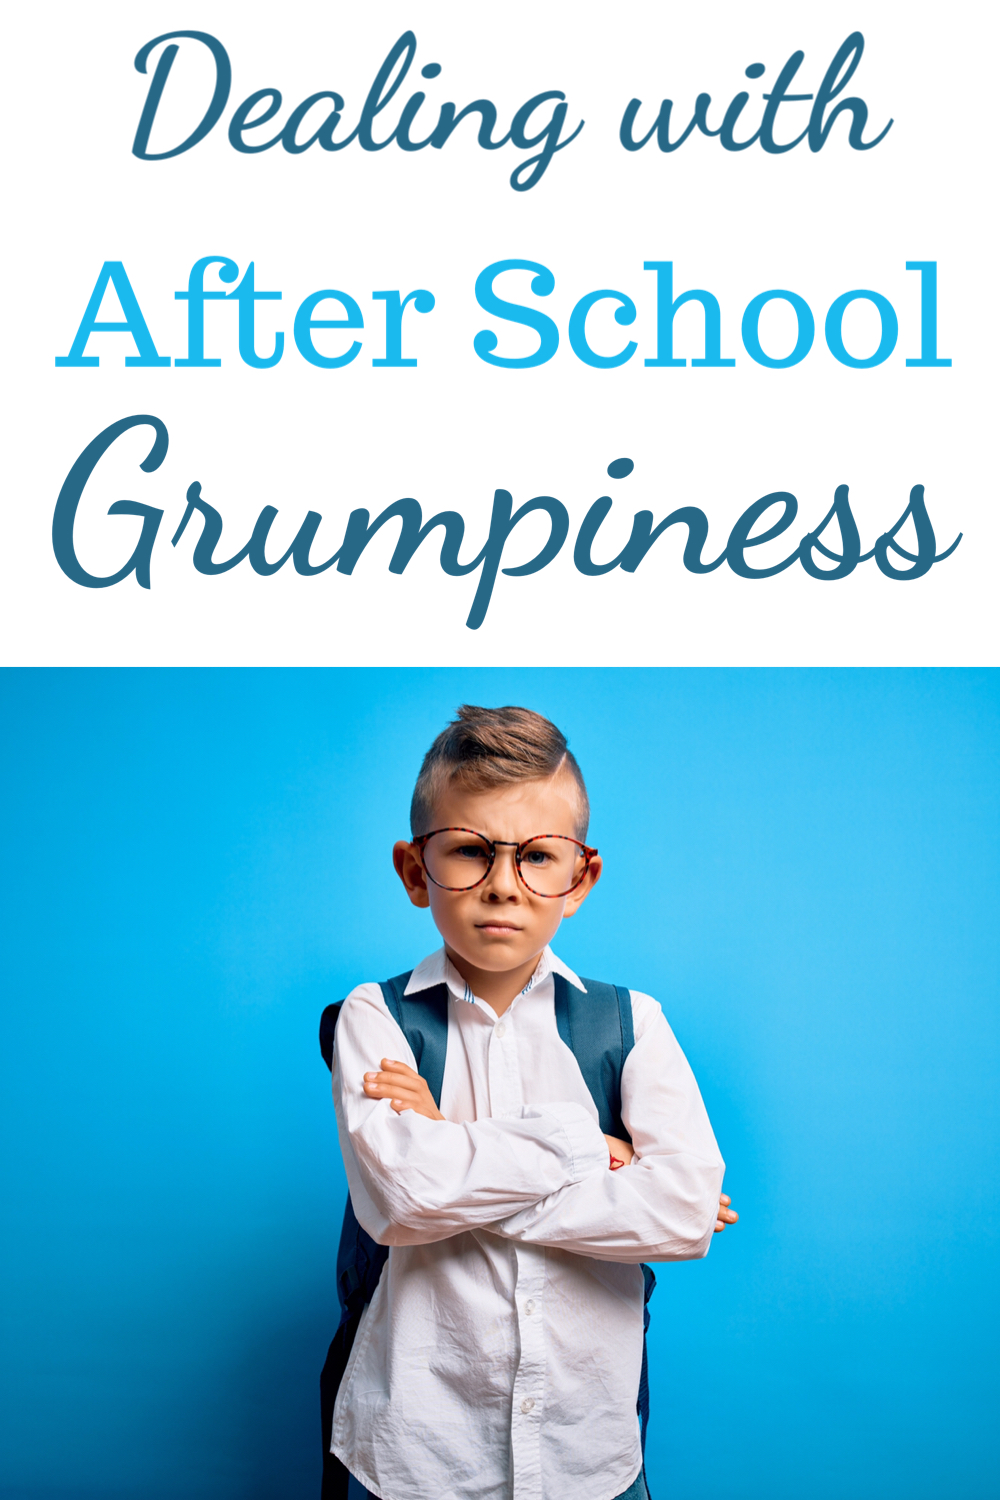 Dealing with after school grumpiness